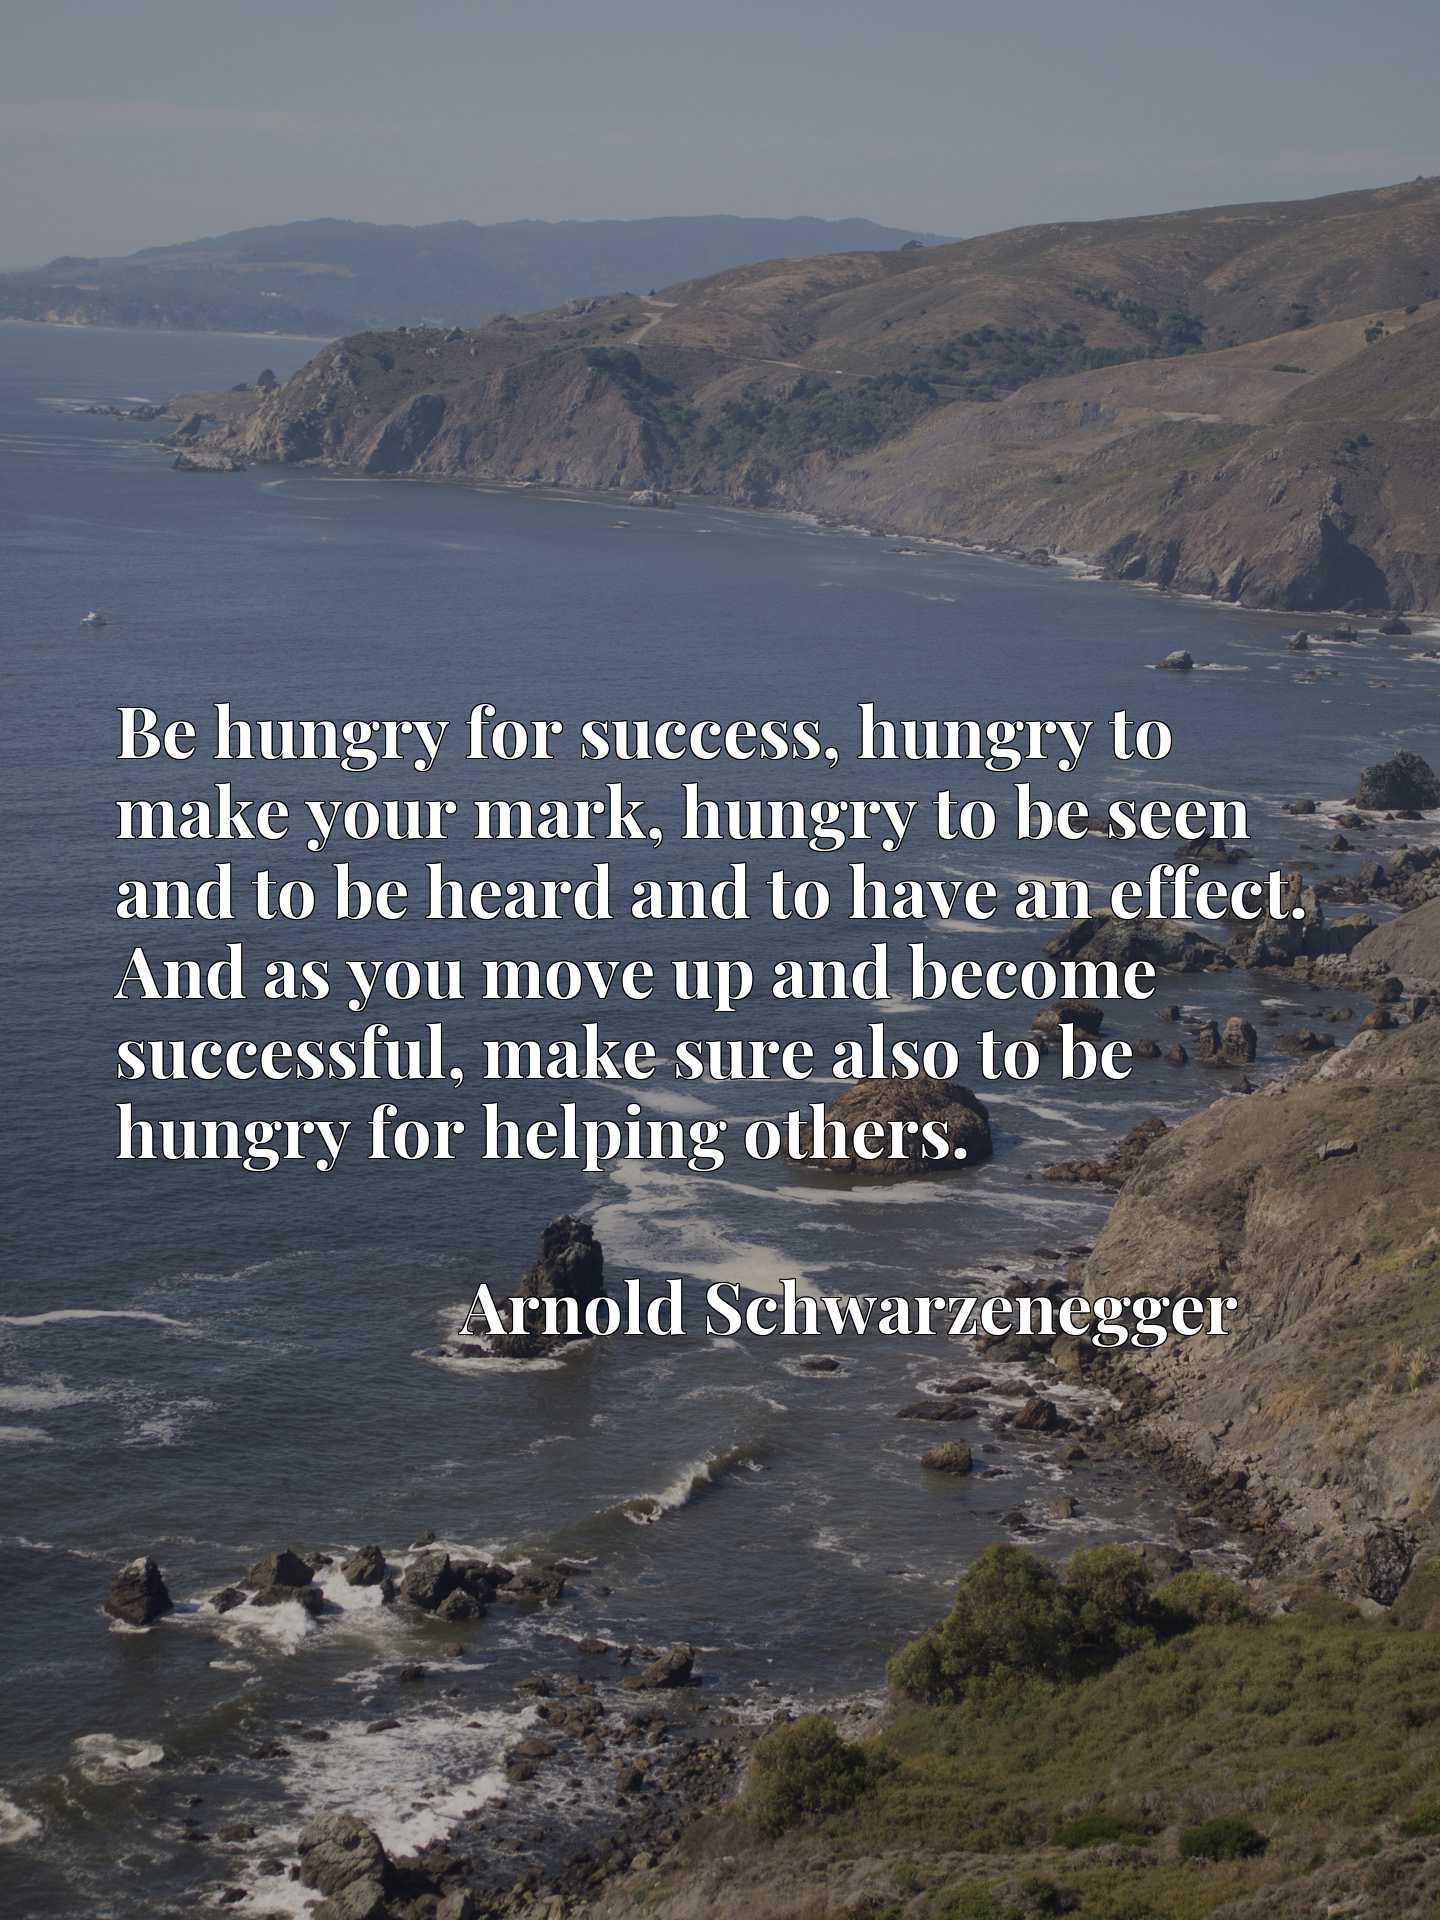 Be hungry for success, hungry to make your mark, hungry to be seen and to be heard and to have an effect. And as you move up and become successful, make sure also to be hungry for helping others.